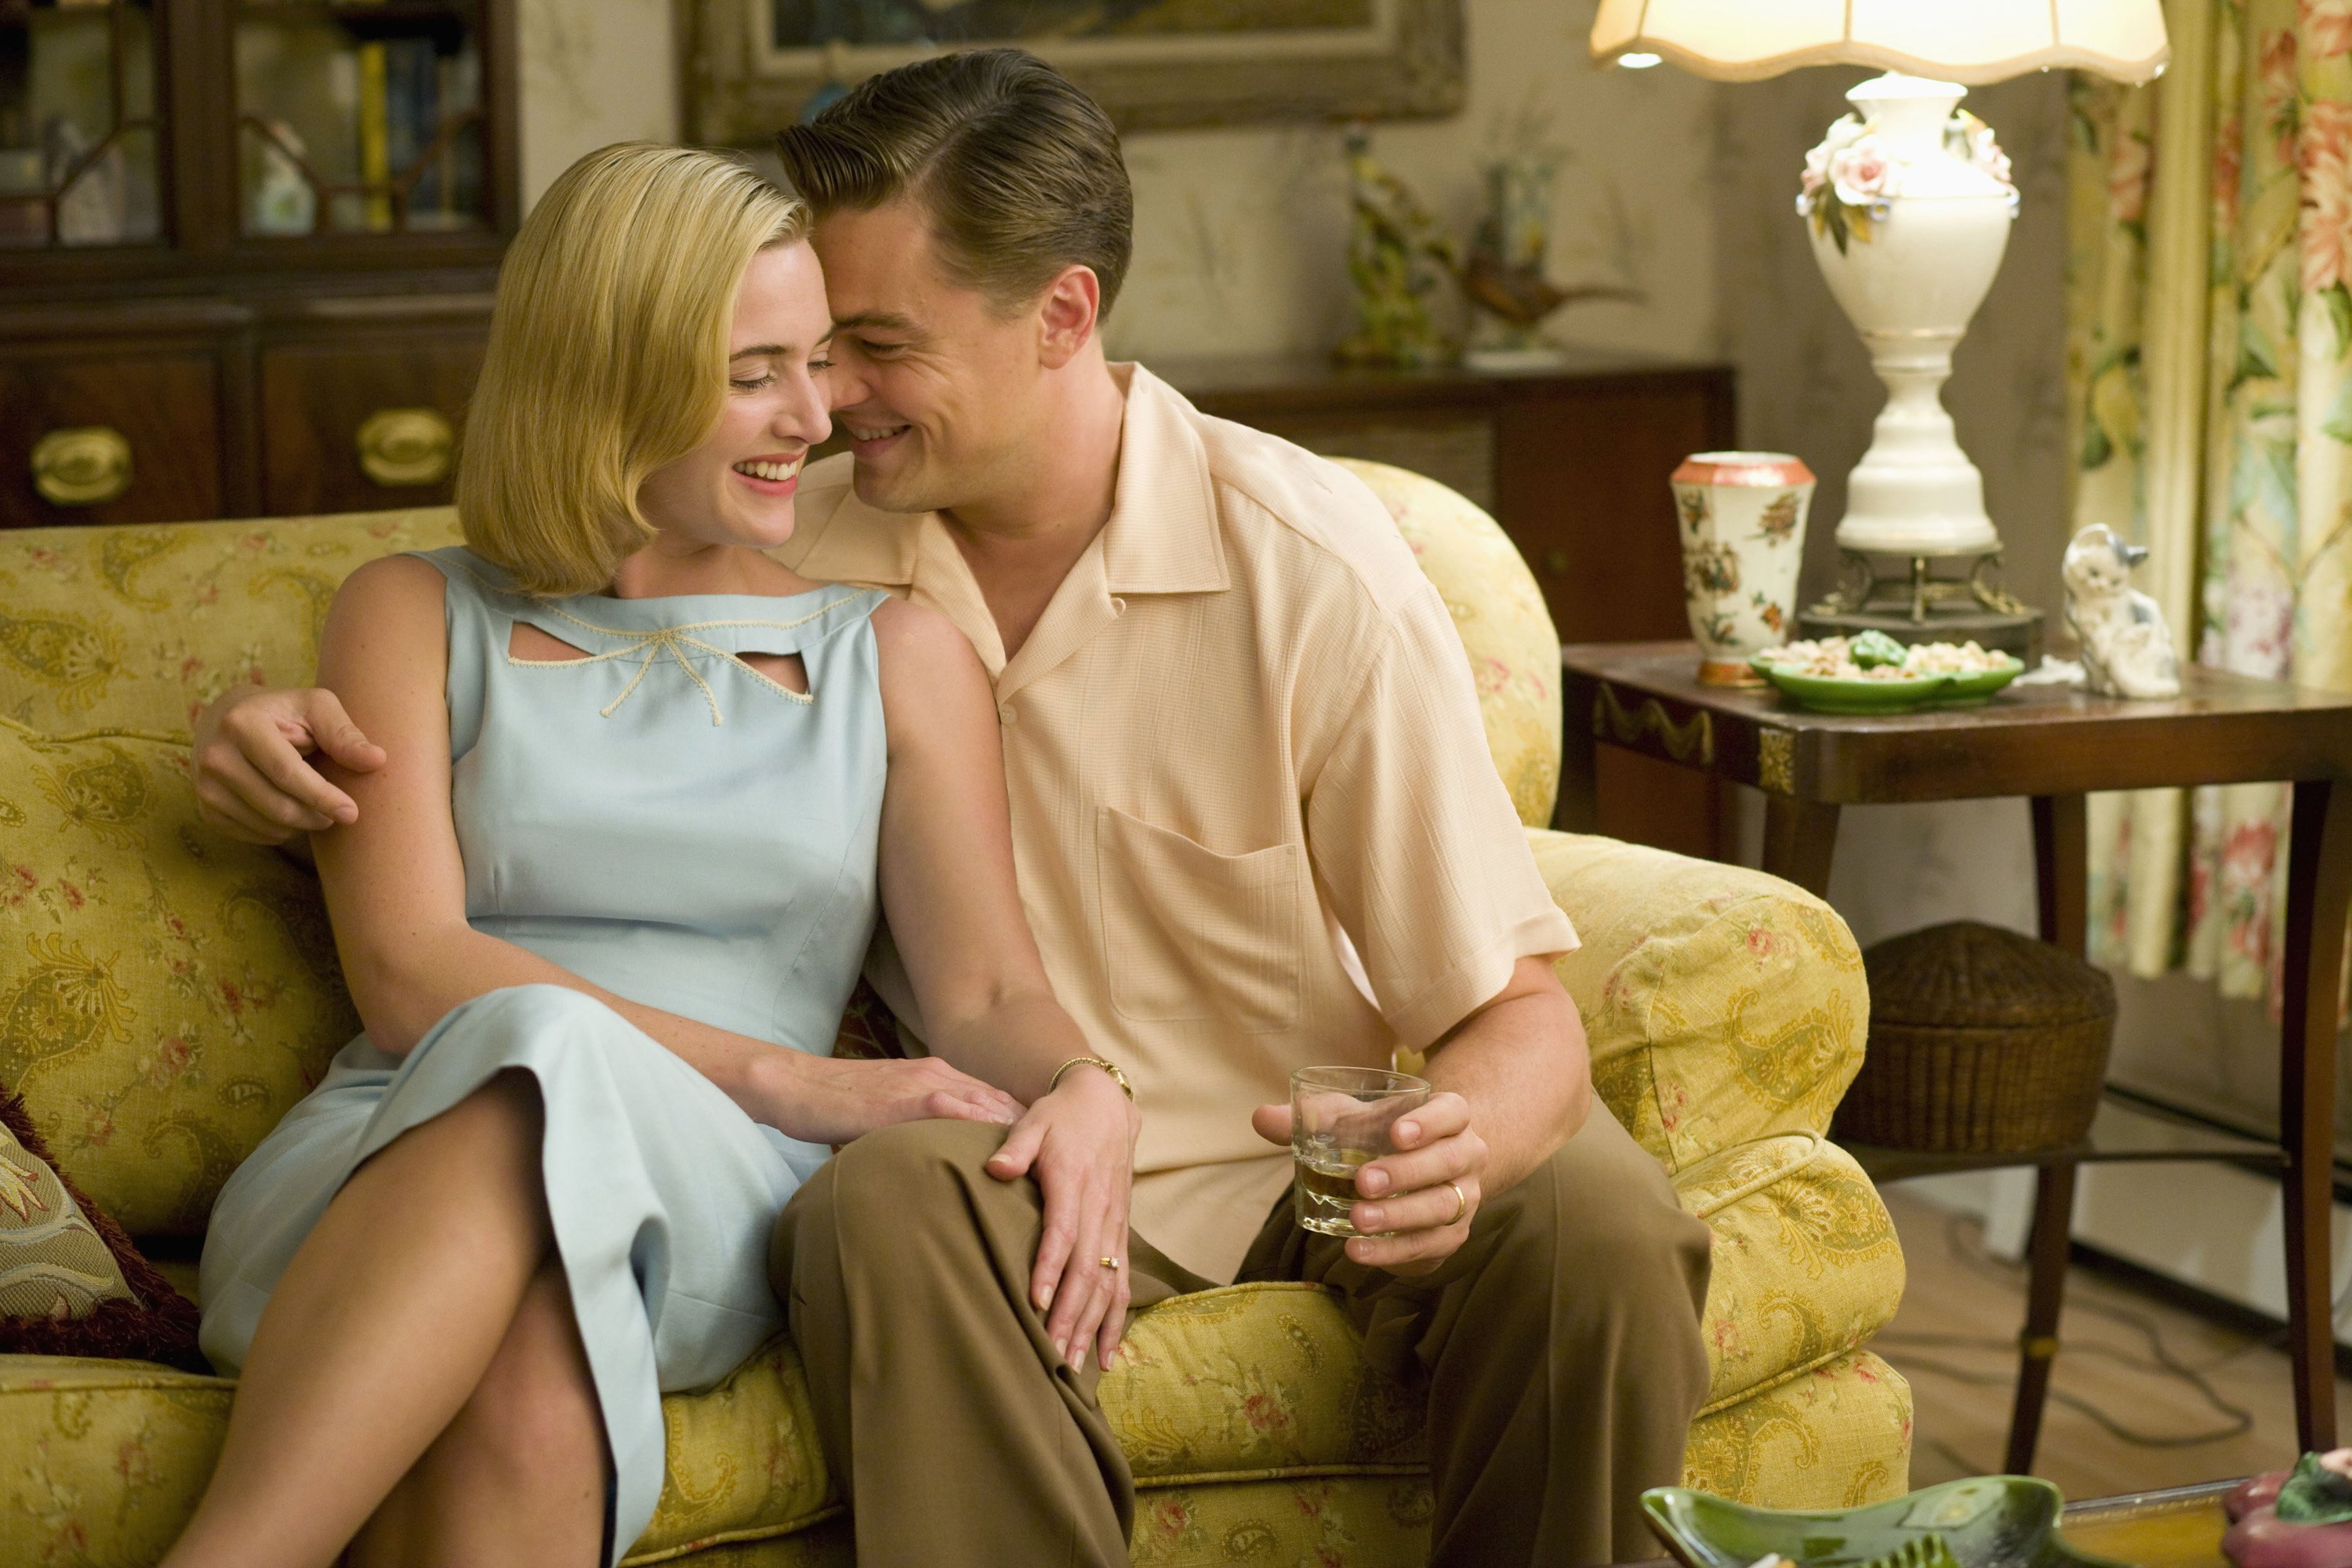 Scena iz filma Revolutionary Road, 2008. godina